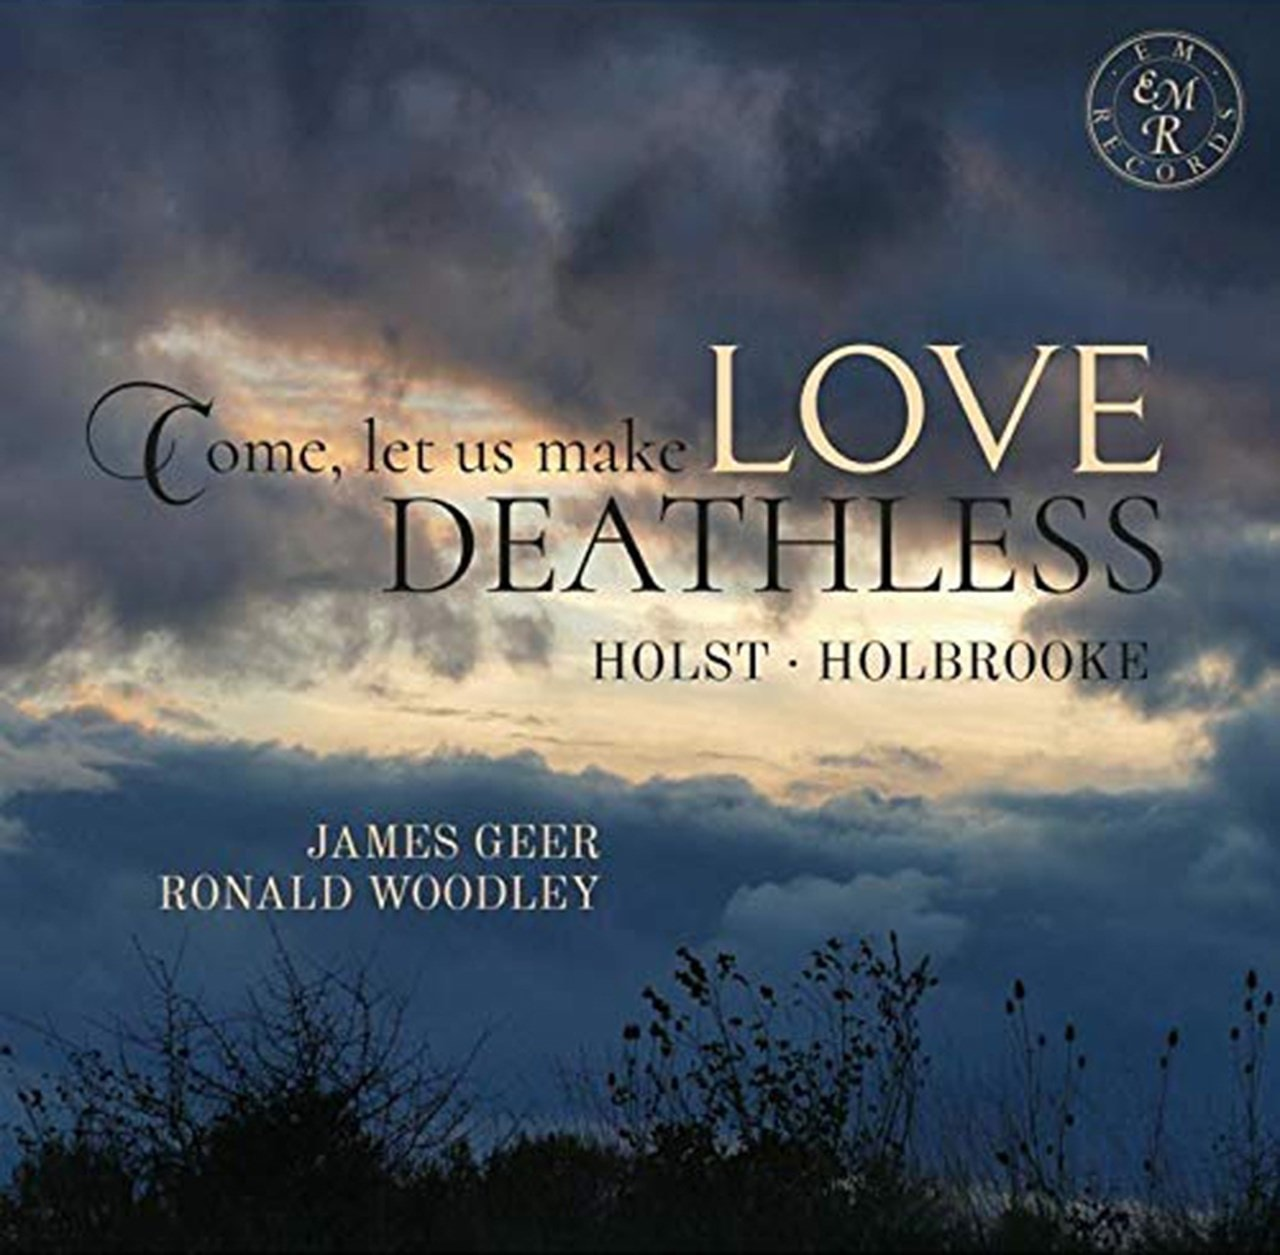 Holst/Holbrooke: Come, Let Us Make Love Deathless - 1